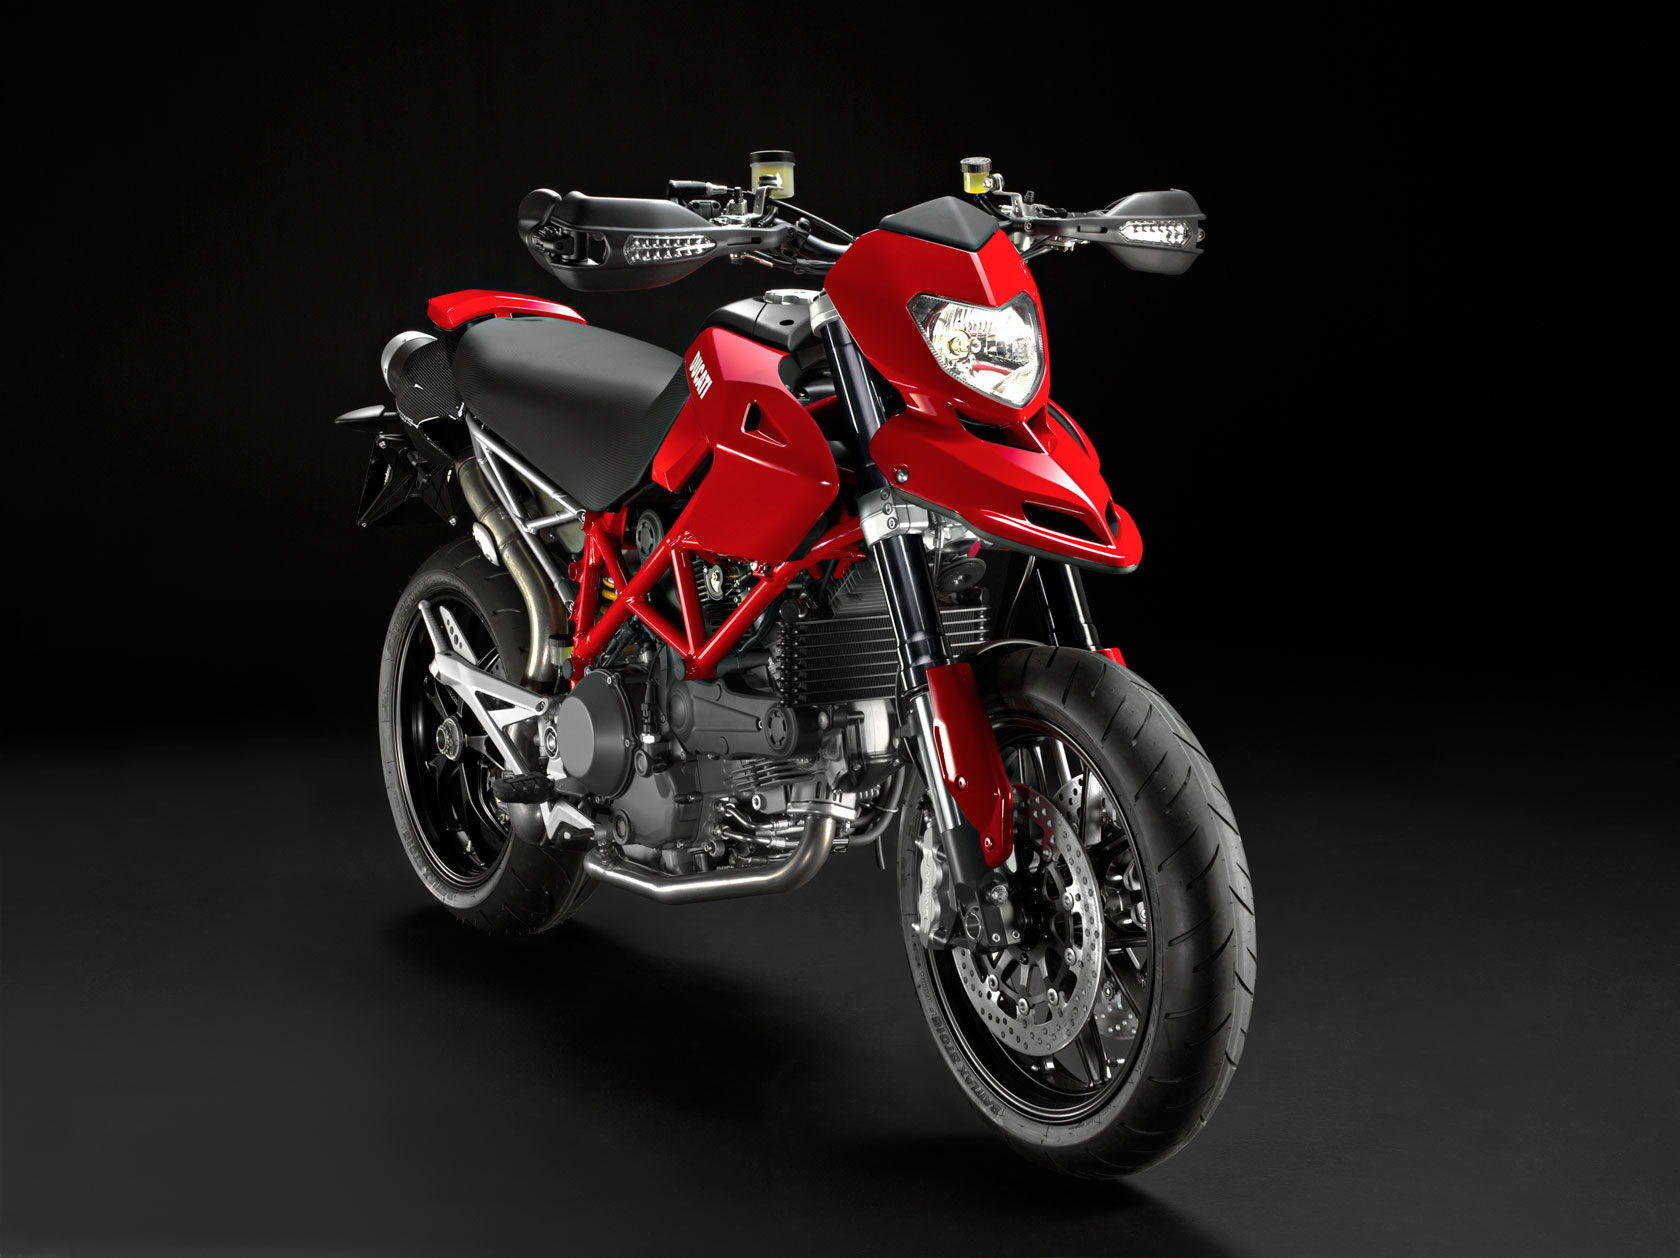 Ducati Hypermotard 796 images #79577